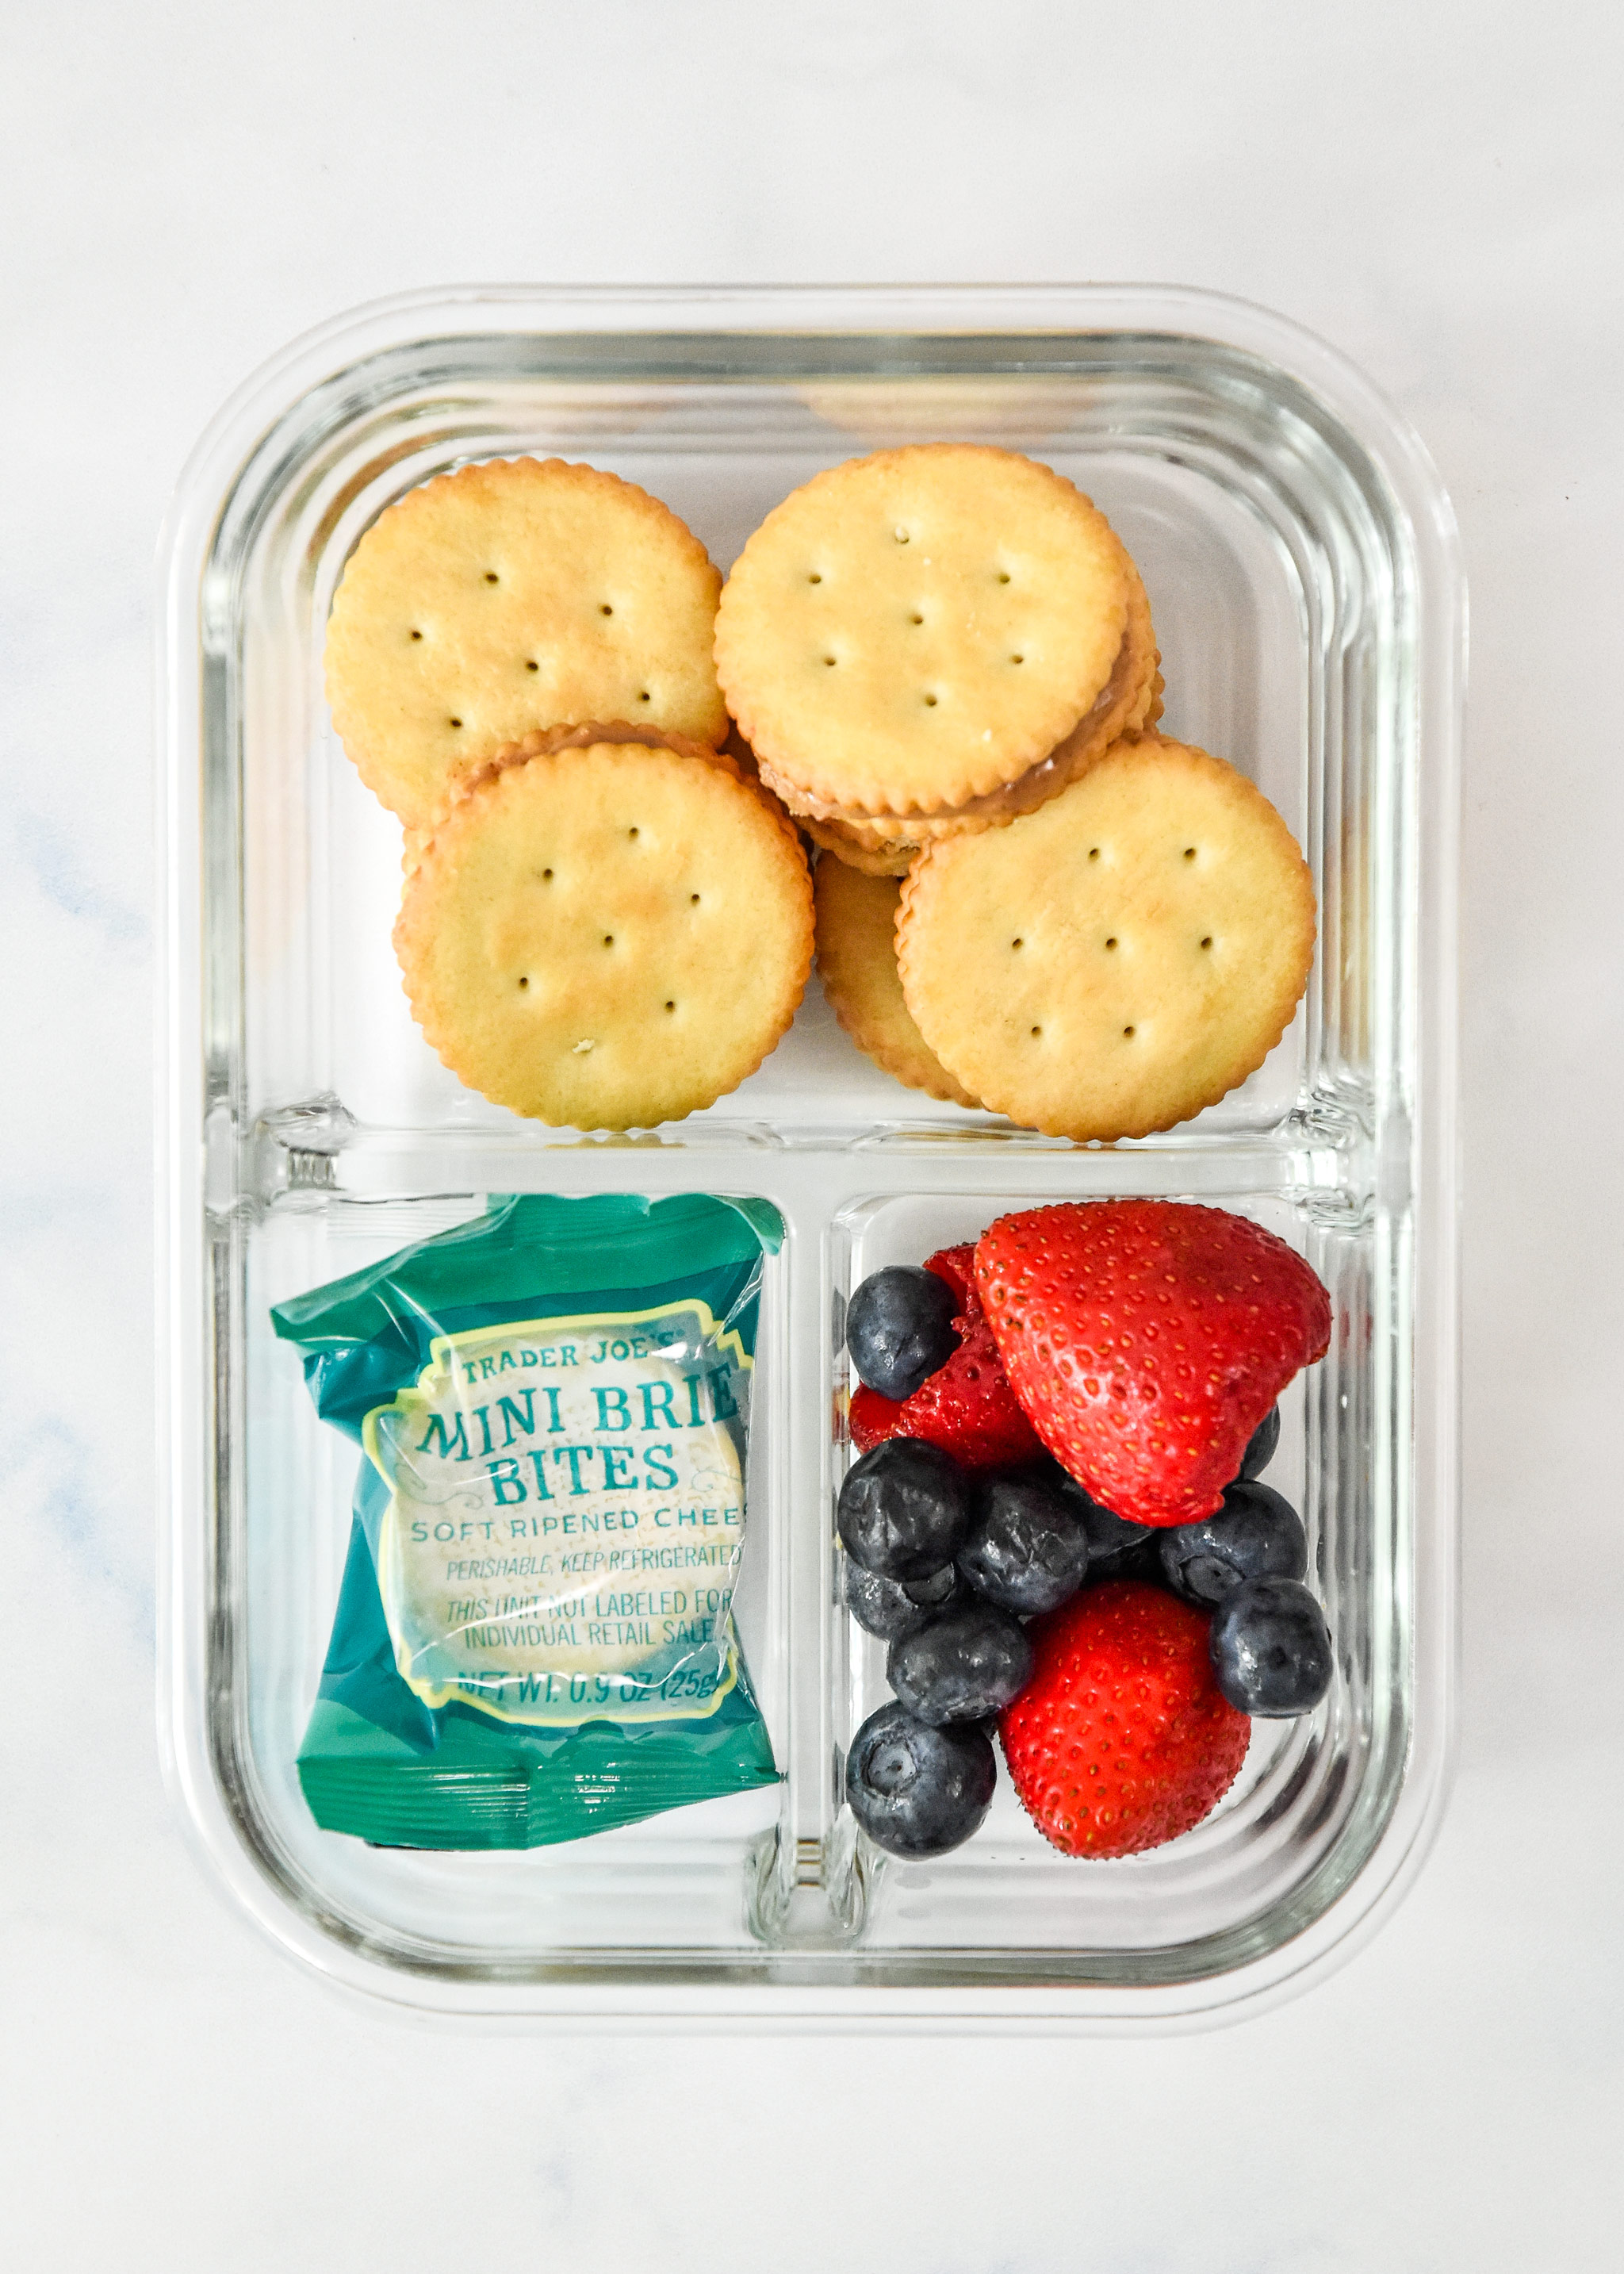 peanut butter cracker sandwiches snack box idea in a meal prep container.